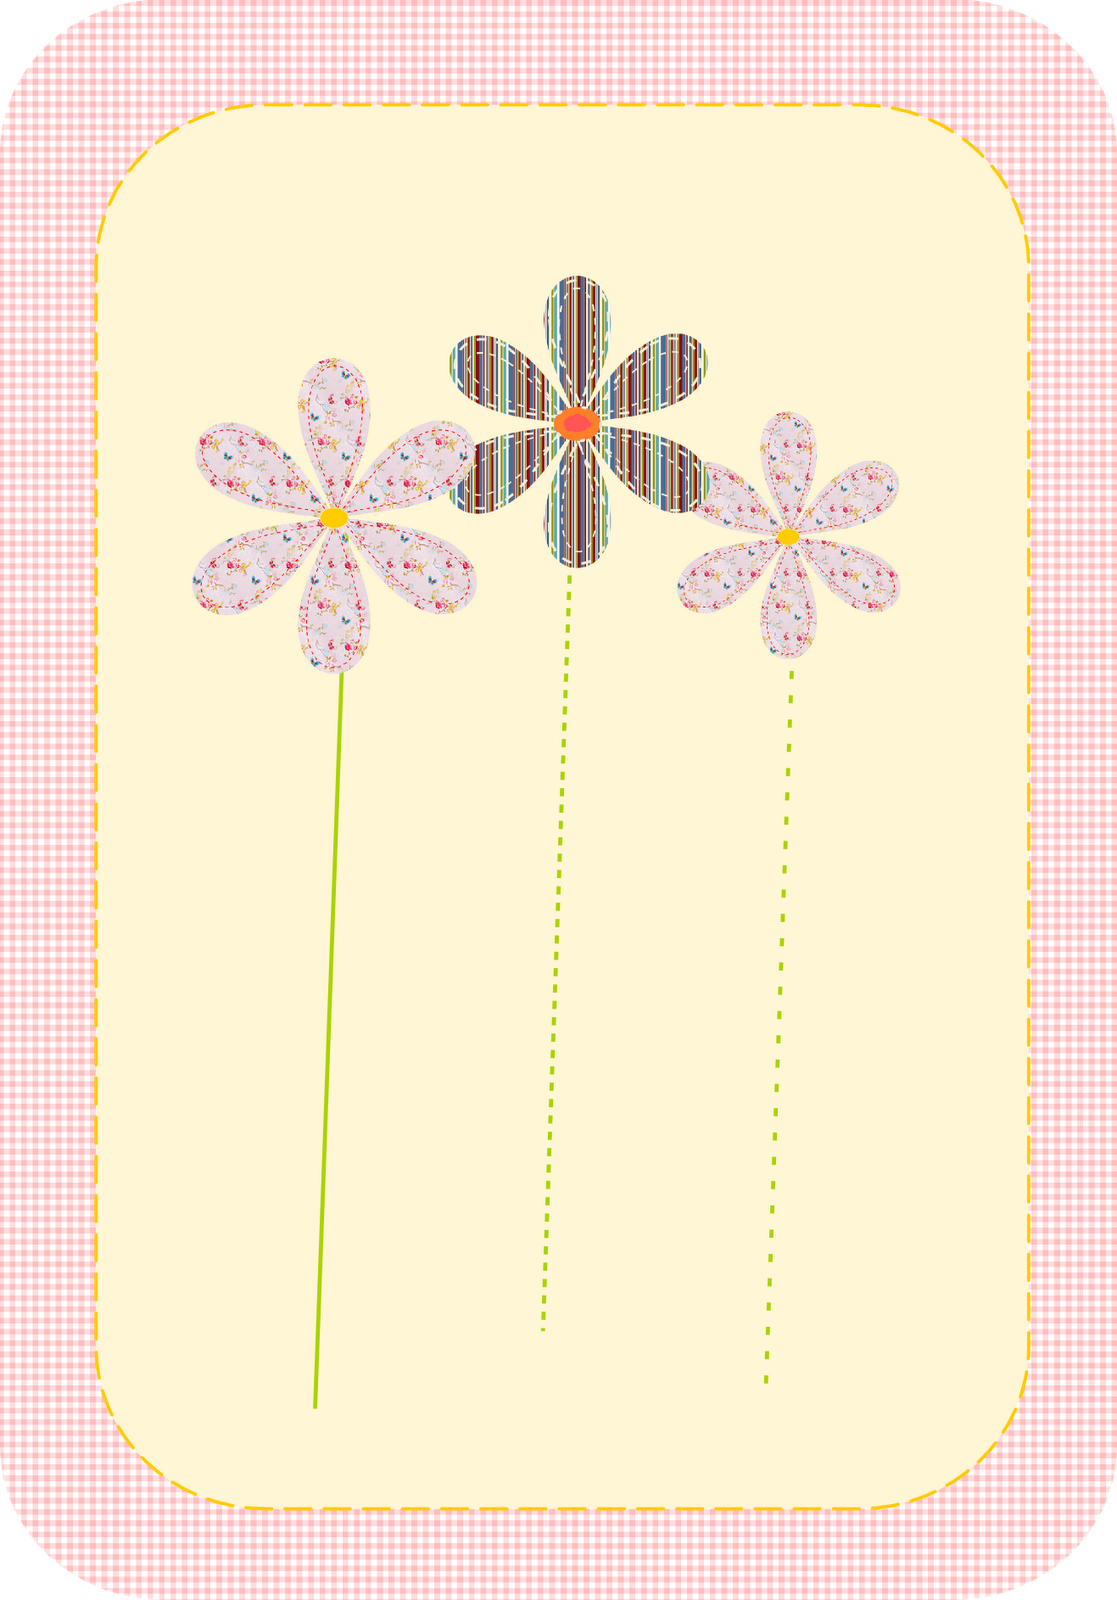 printable cards | Free printable greeting cards – flower clipart graphics – Karten ...